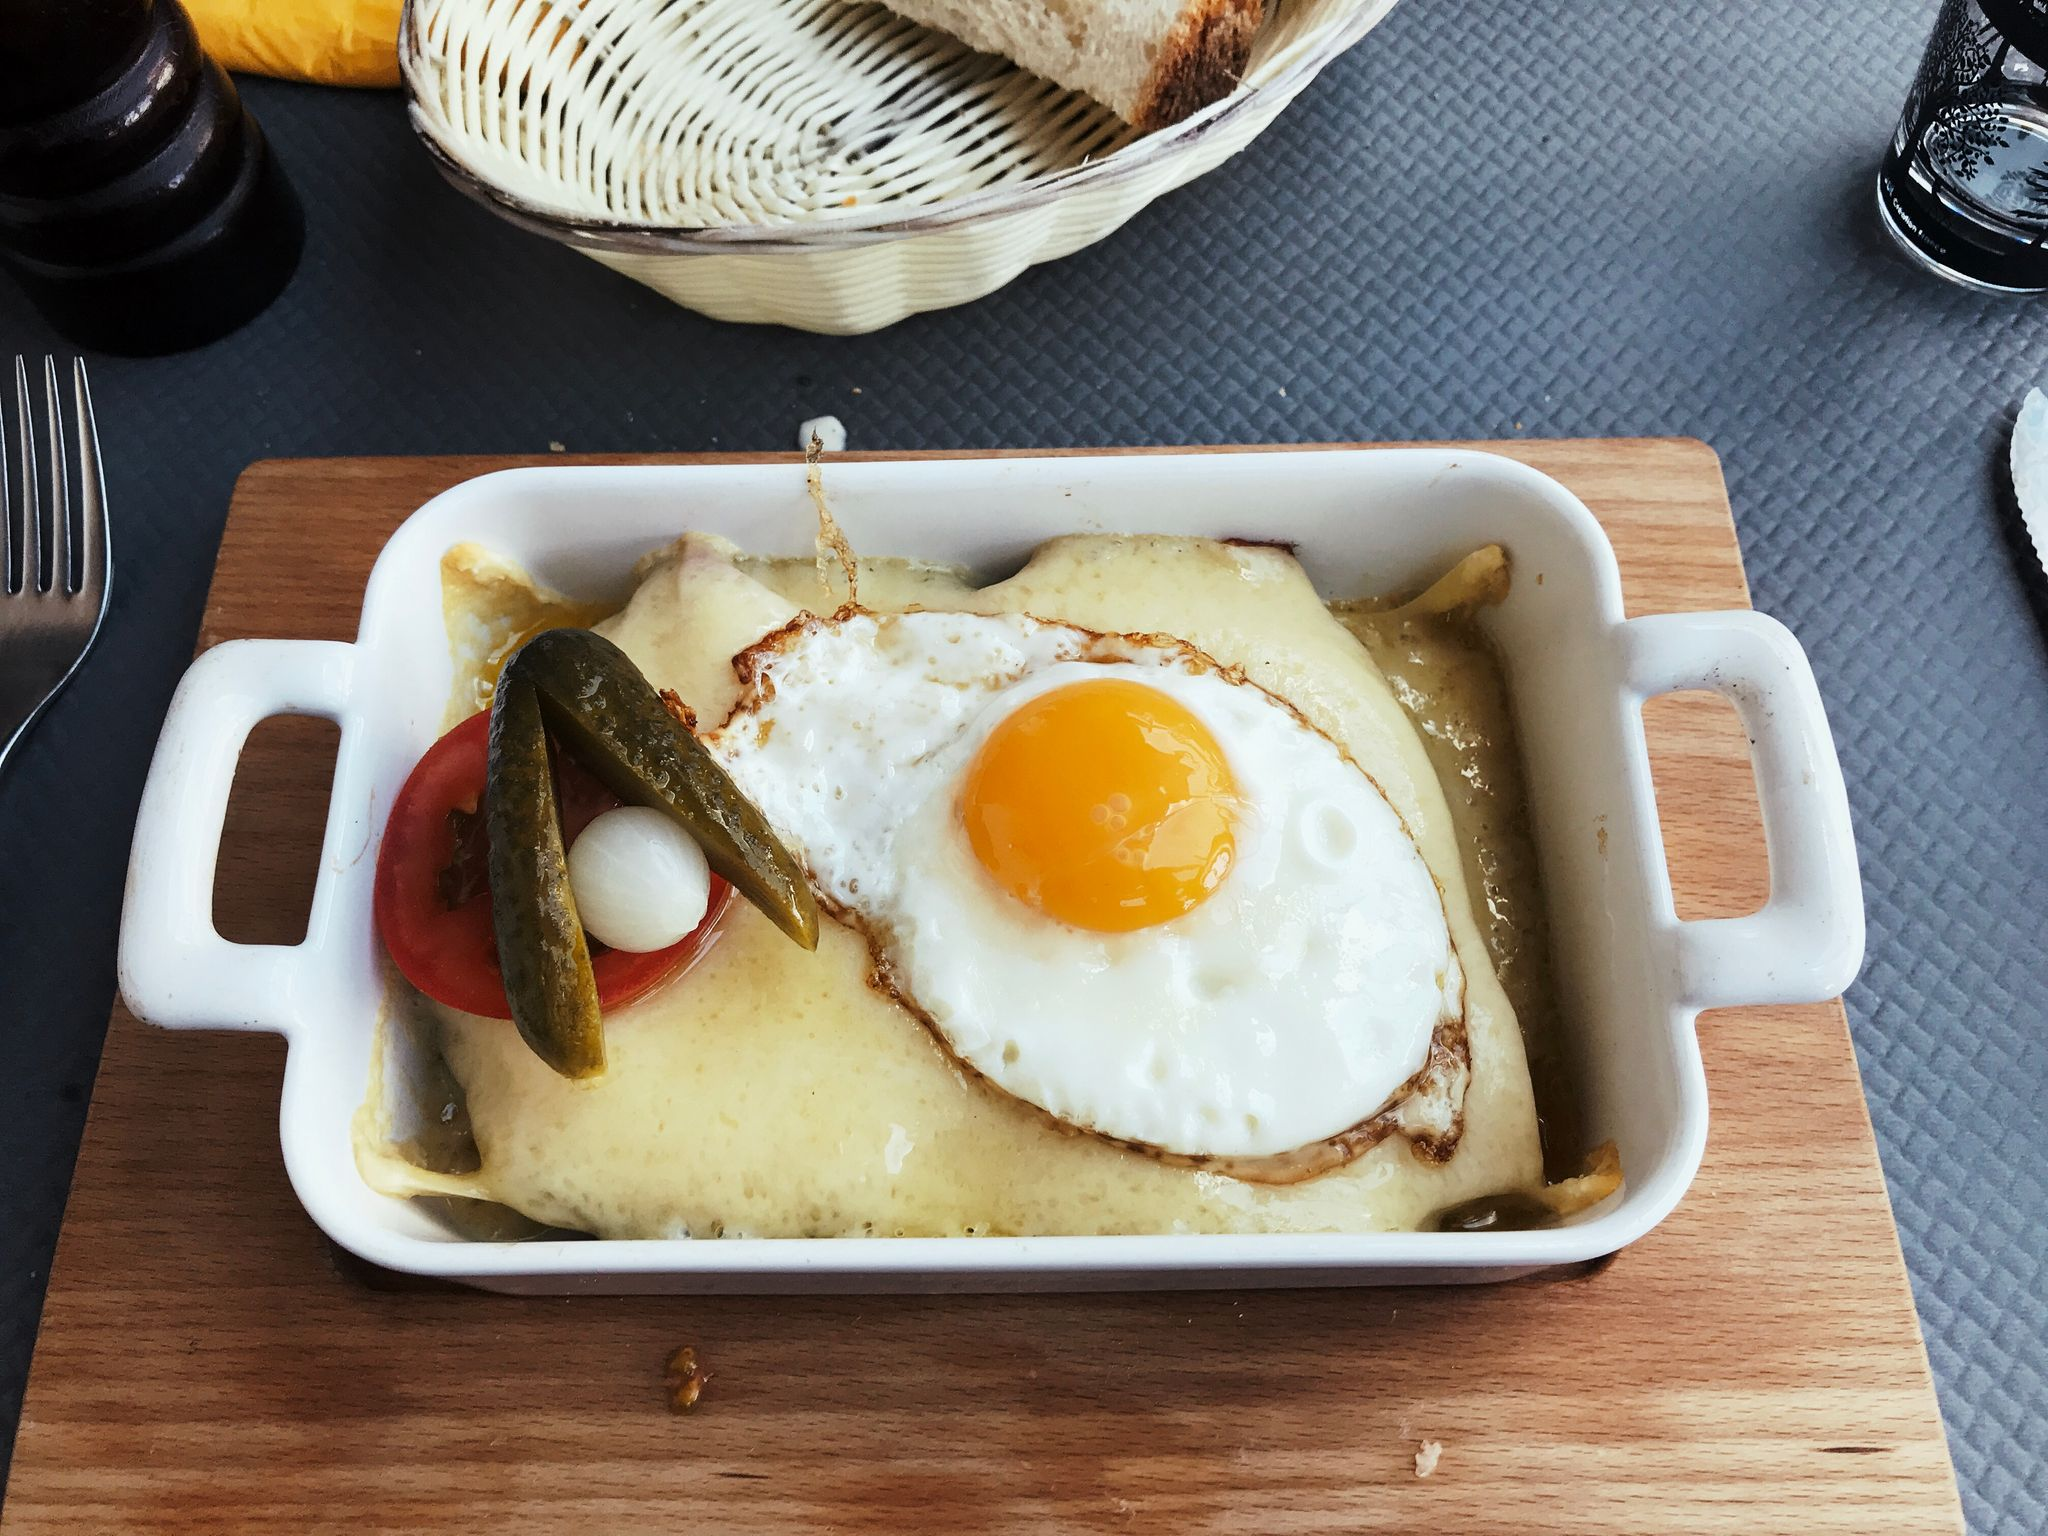 A photo of a rectangular white ceramic dish that appears to contain almost nothing but melted cheese. On top is a pickle, a slice of tomato, and a fried egg.